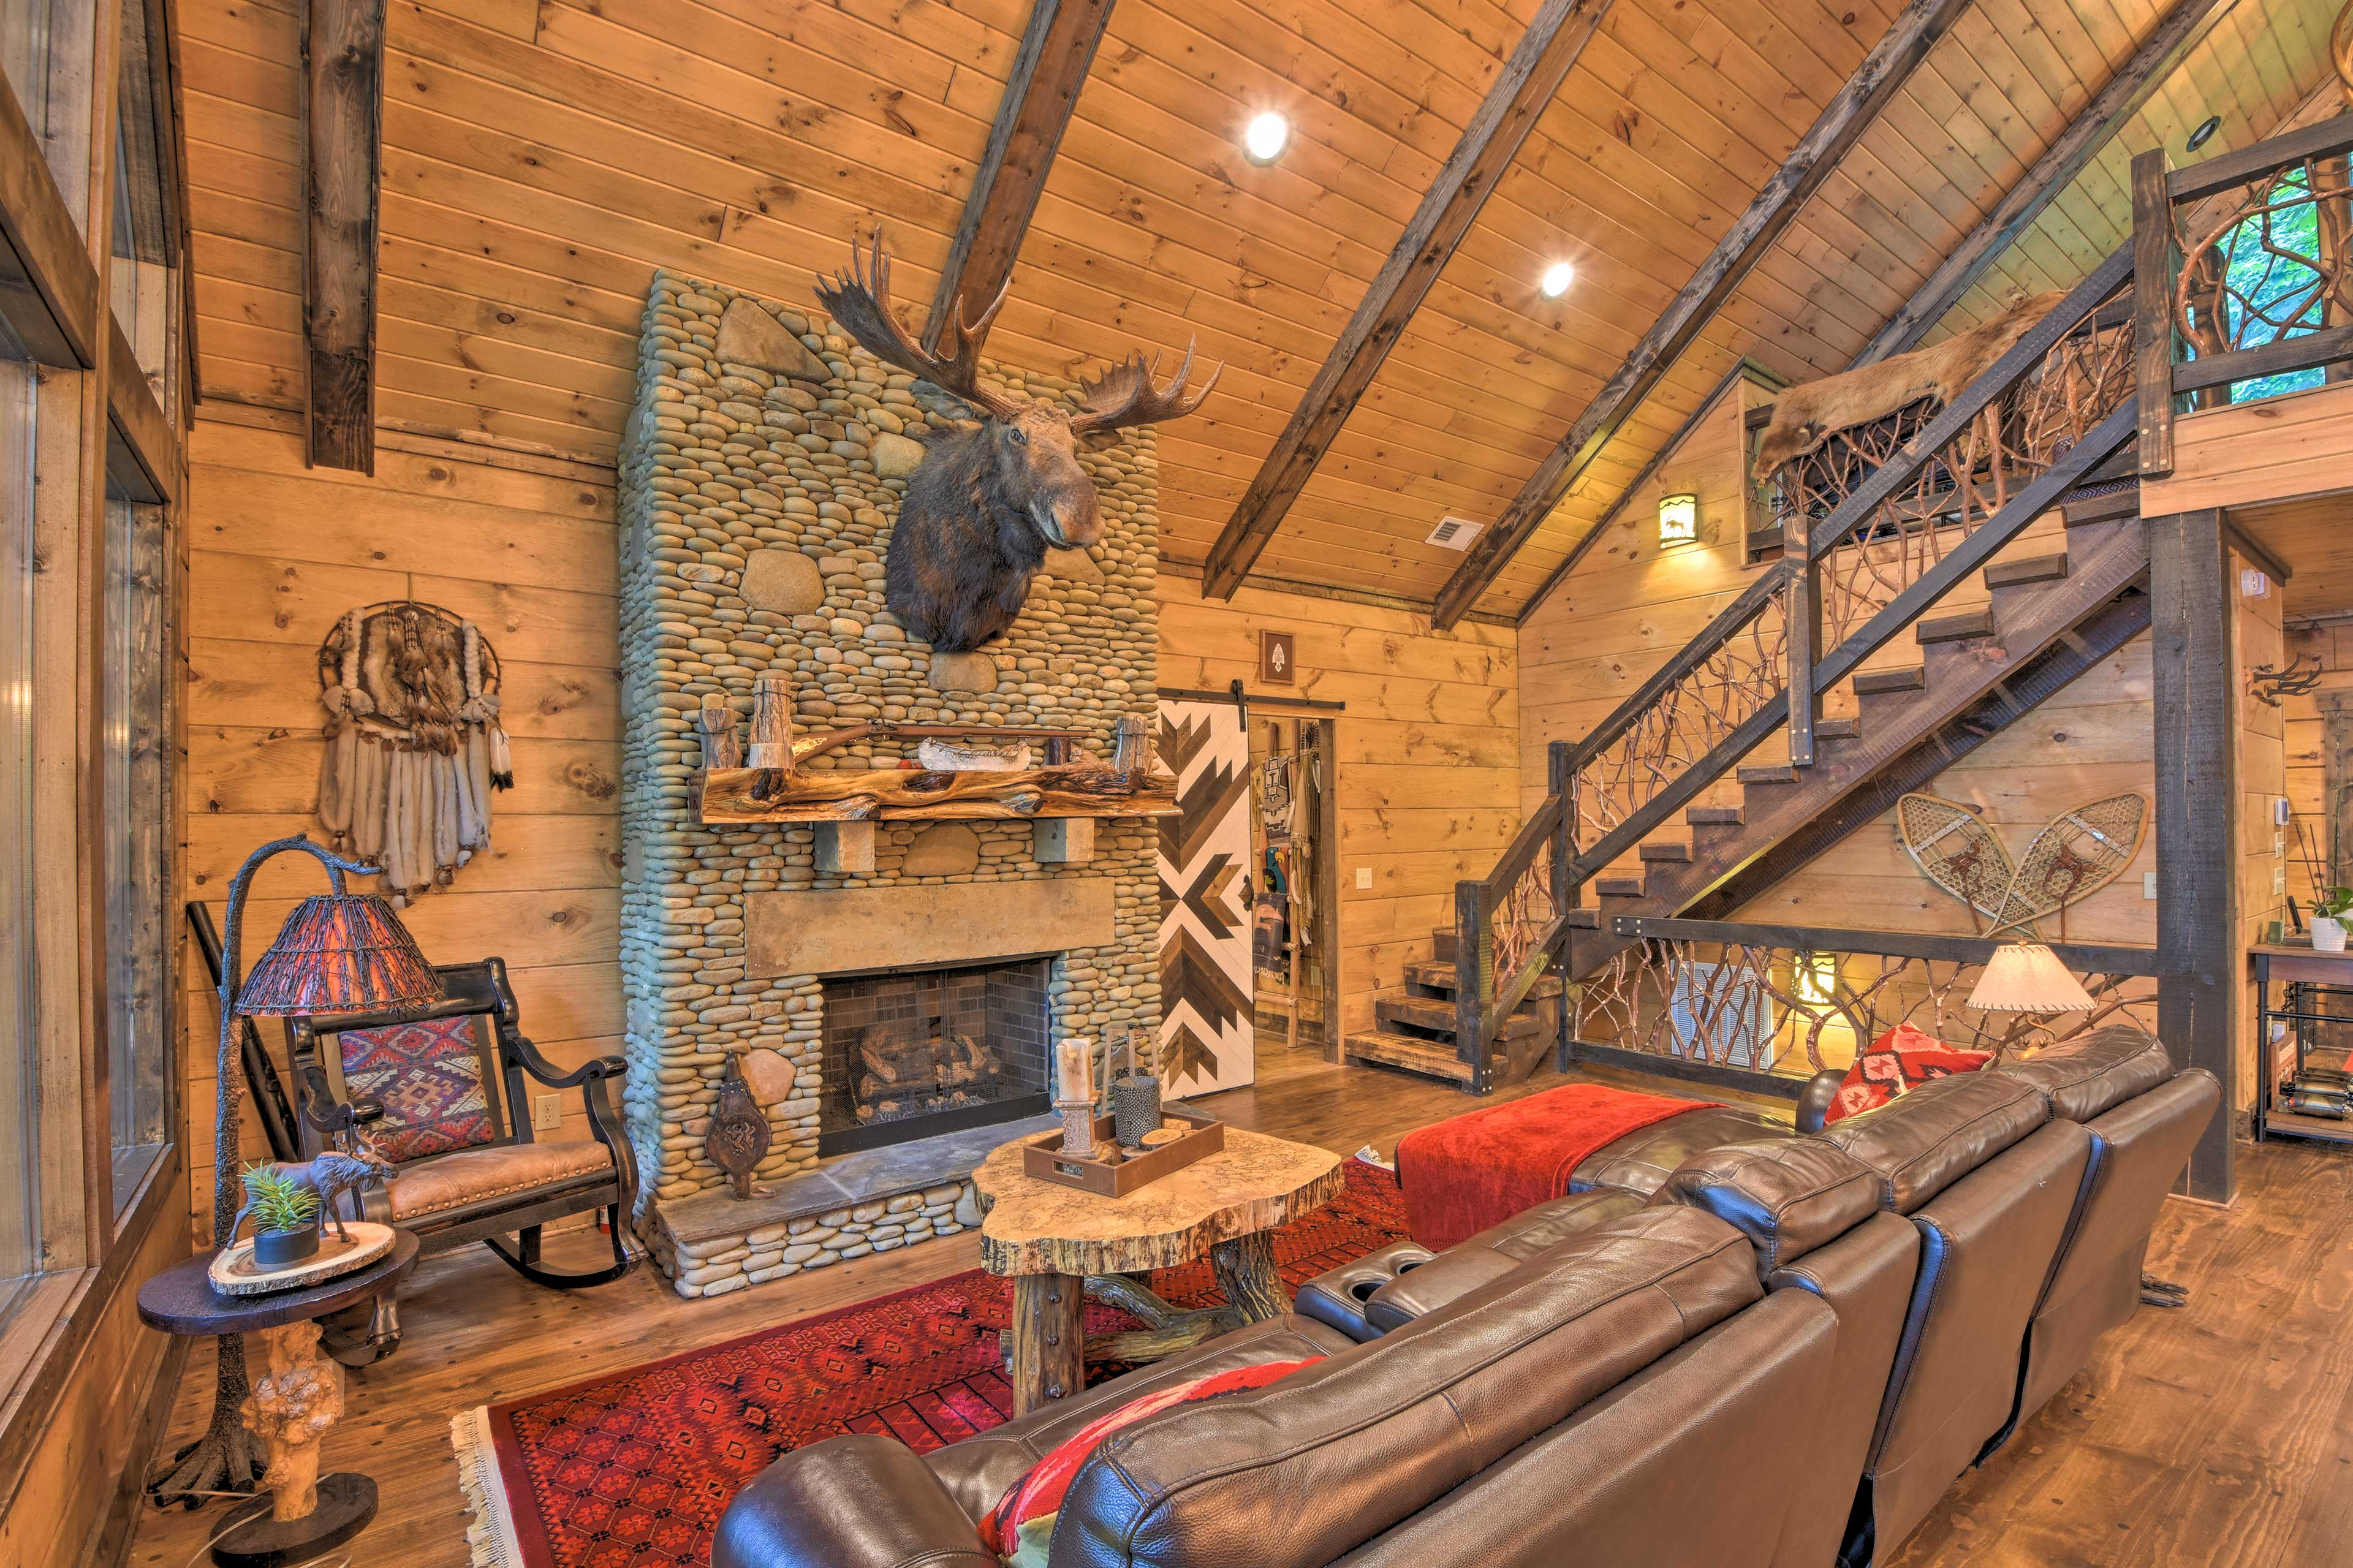 Warm your toes by the stone fireplace.